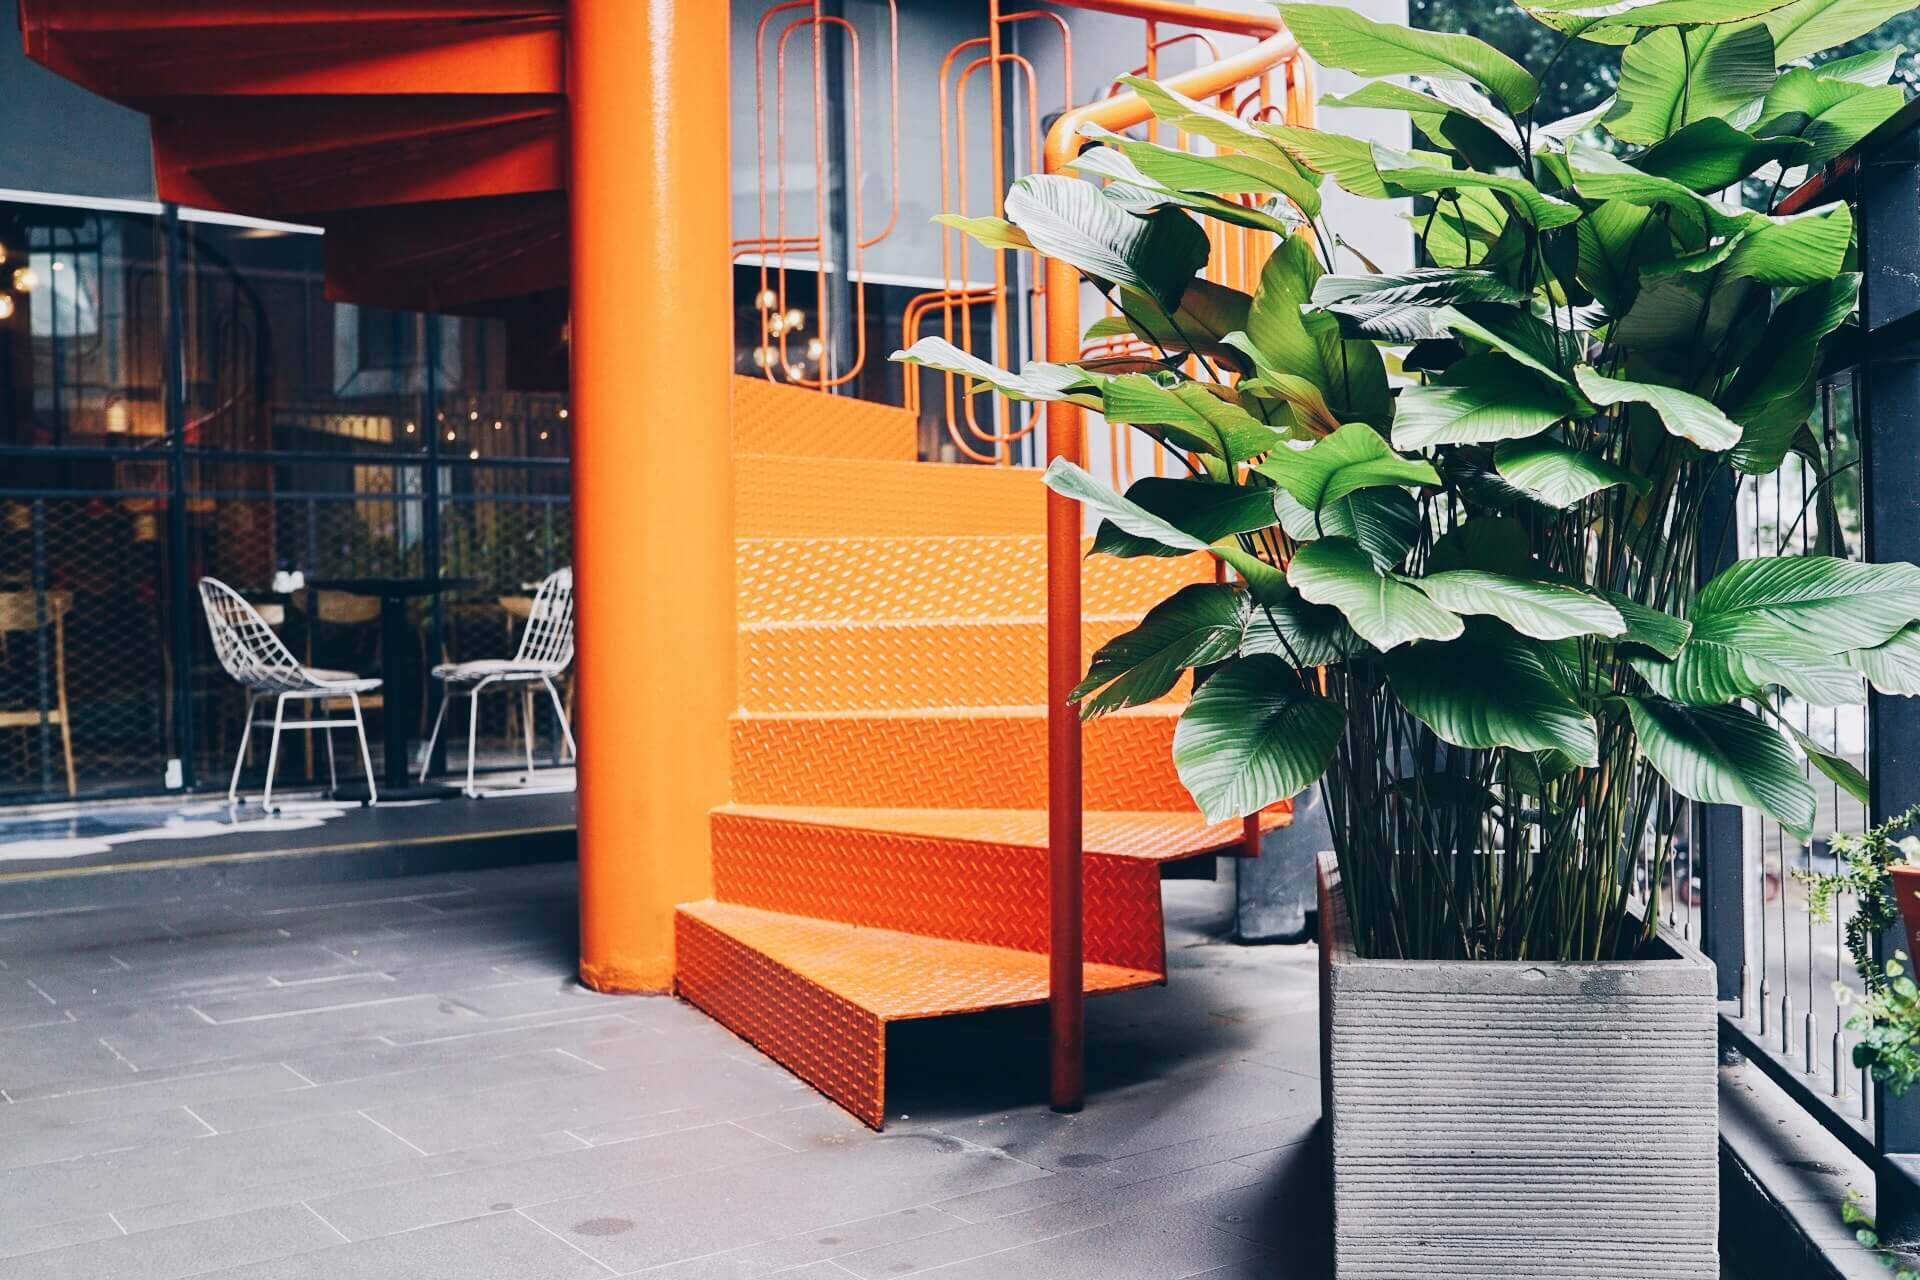 Potted plant next to a neon orange spiral staircase at the KL Journal Hotel